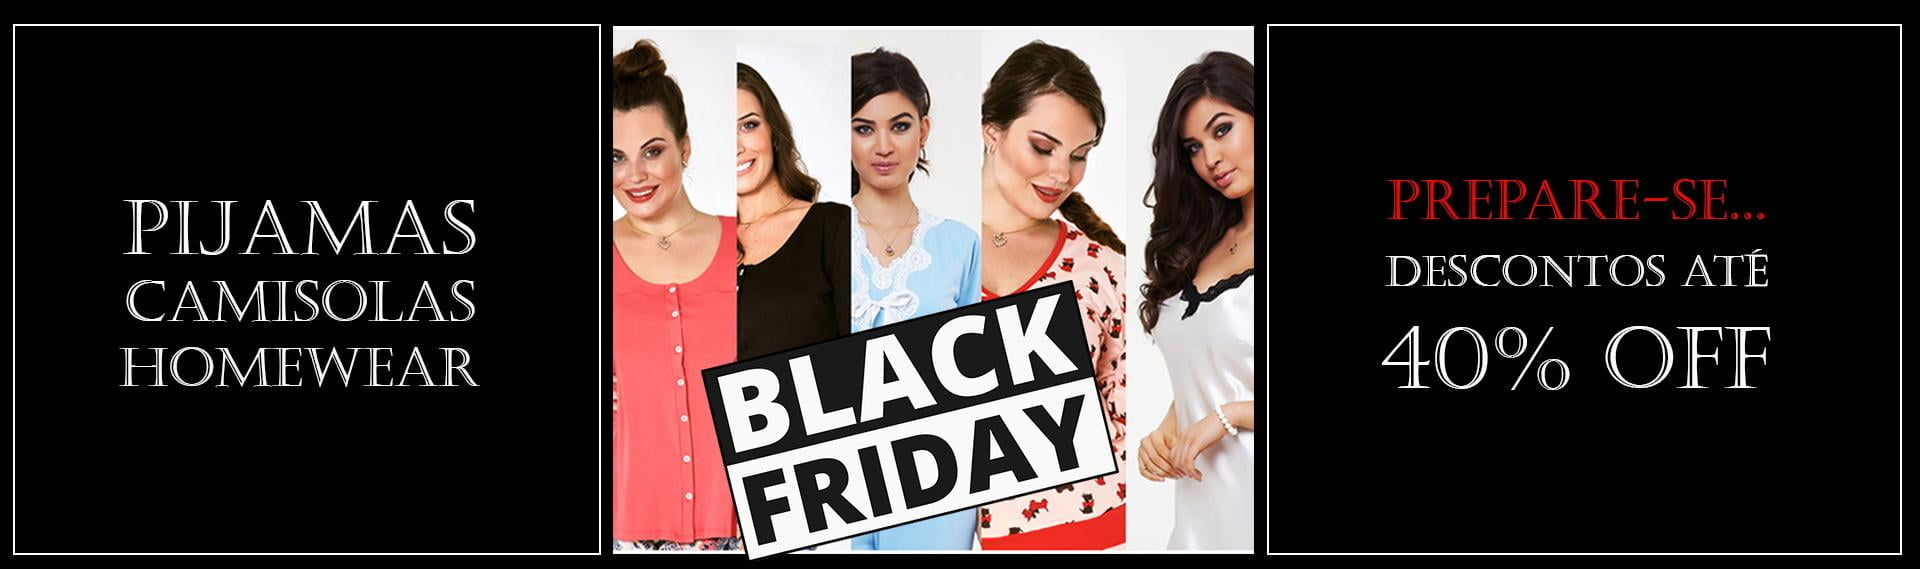 Black Friday Prepare-se